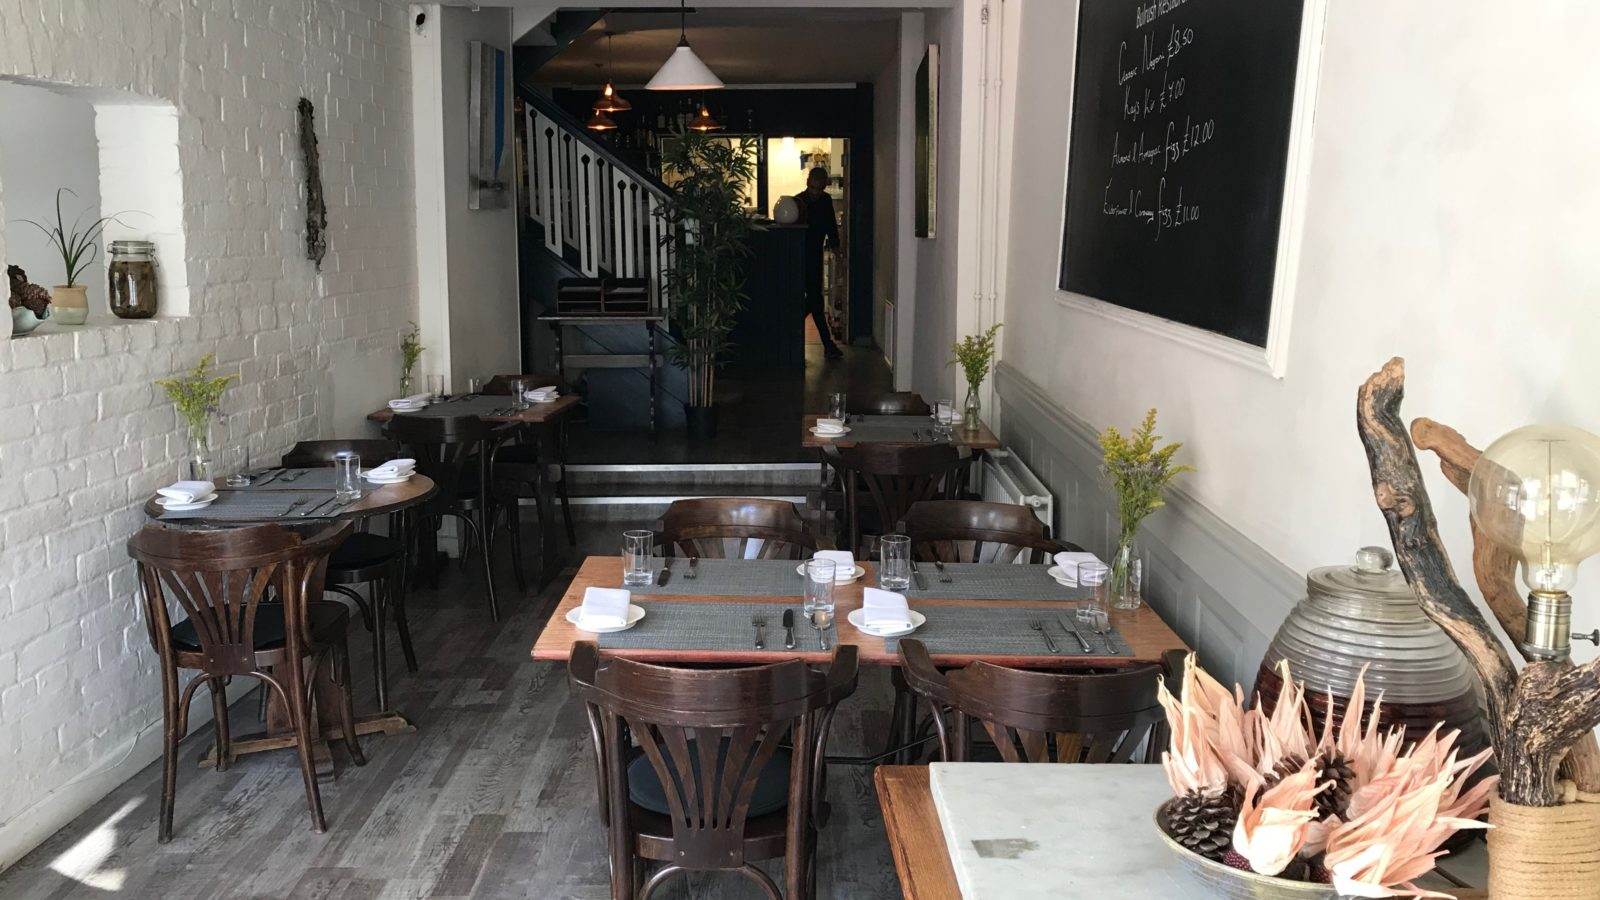 The 8 best places to eat, drink and shop in Bristol